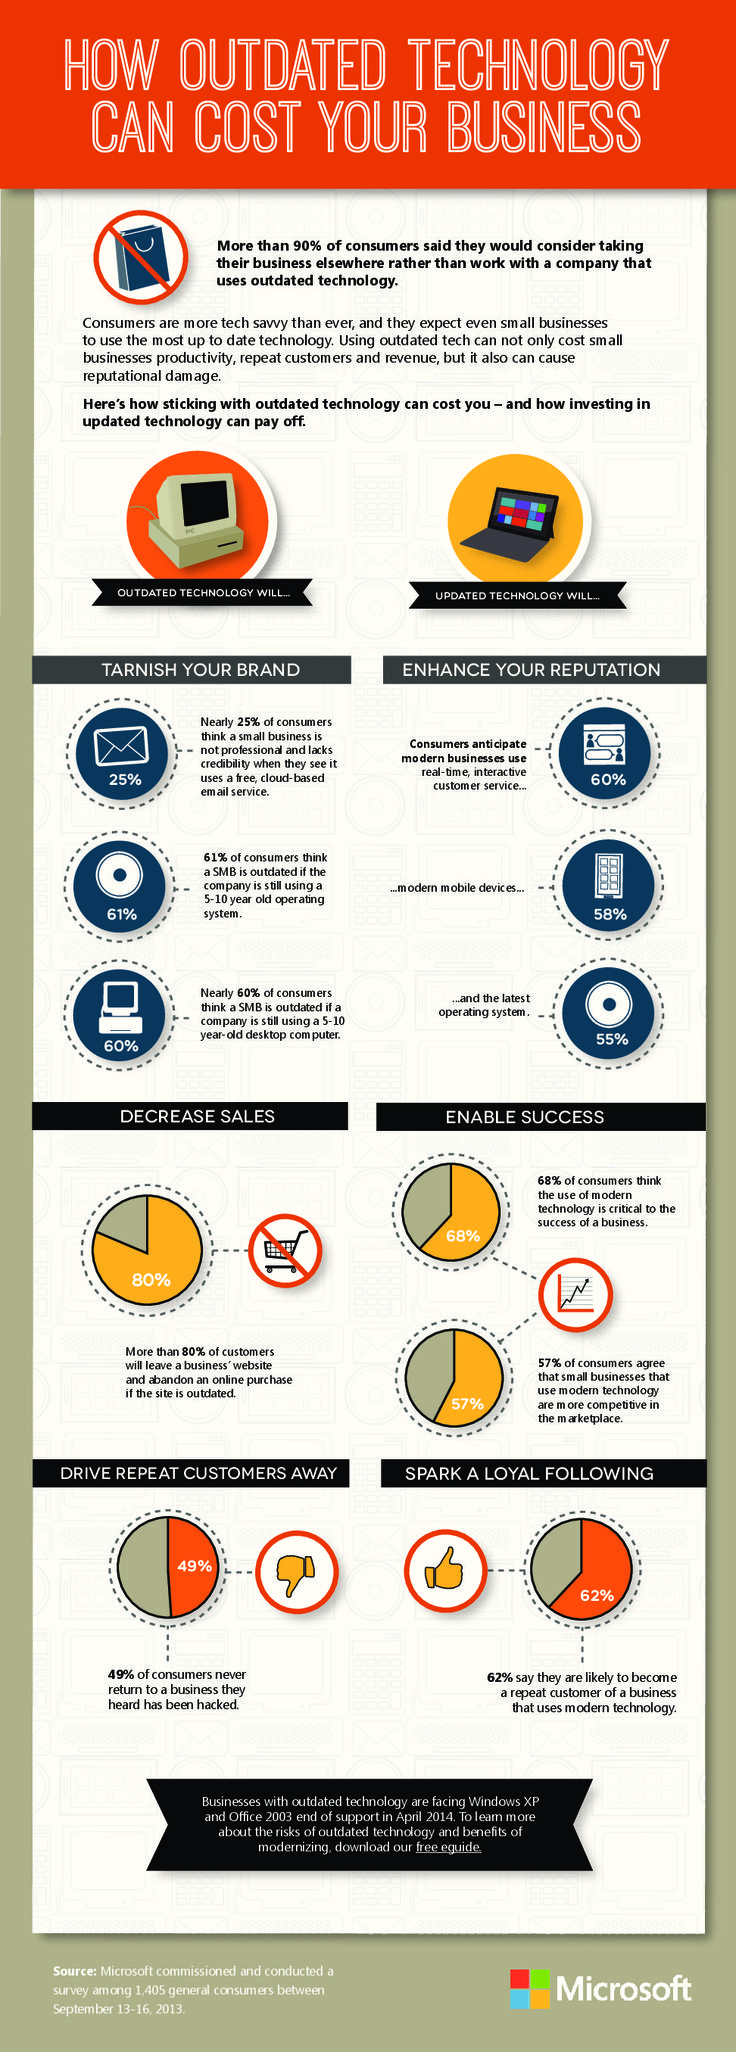 How Outdated Technology Can Cost Your Business   #Infographic #business #Technology